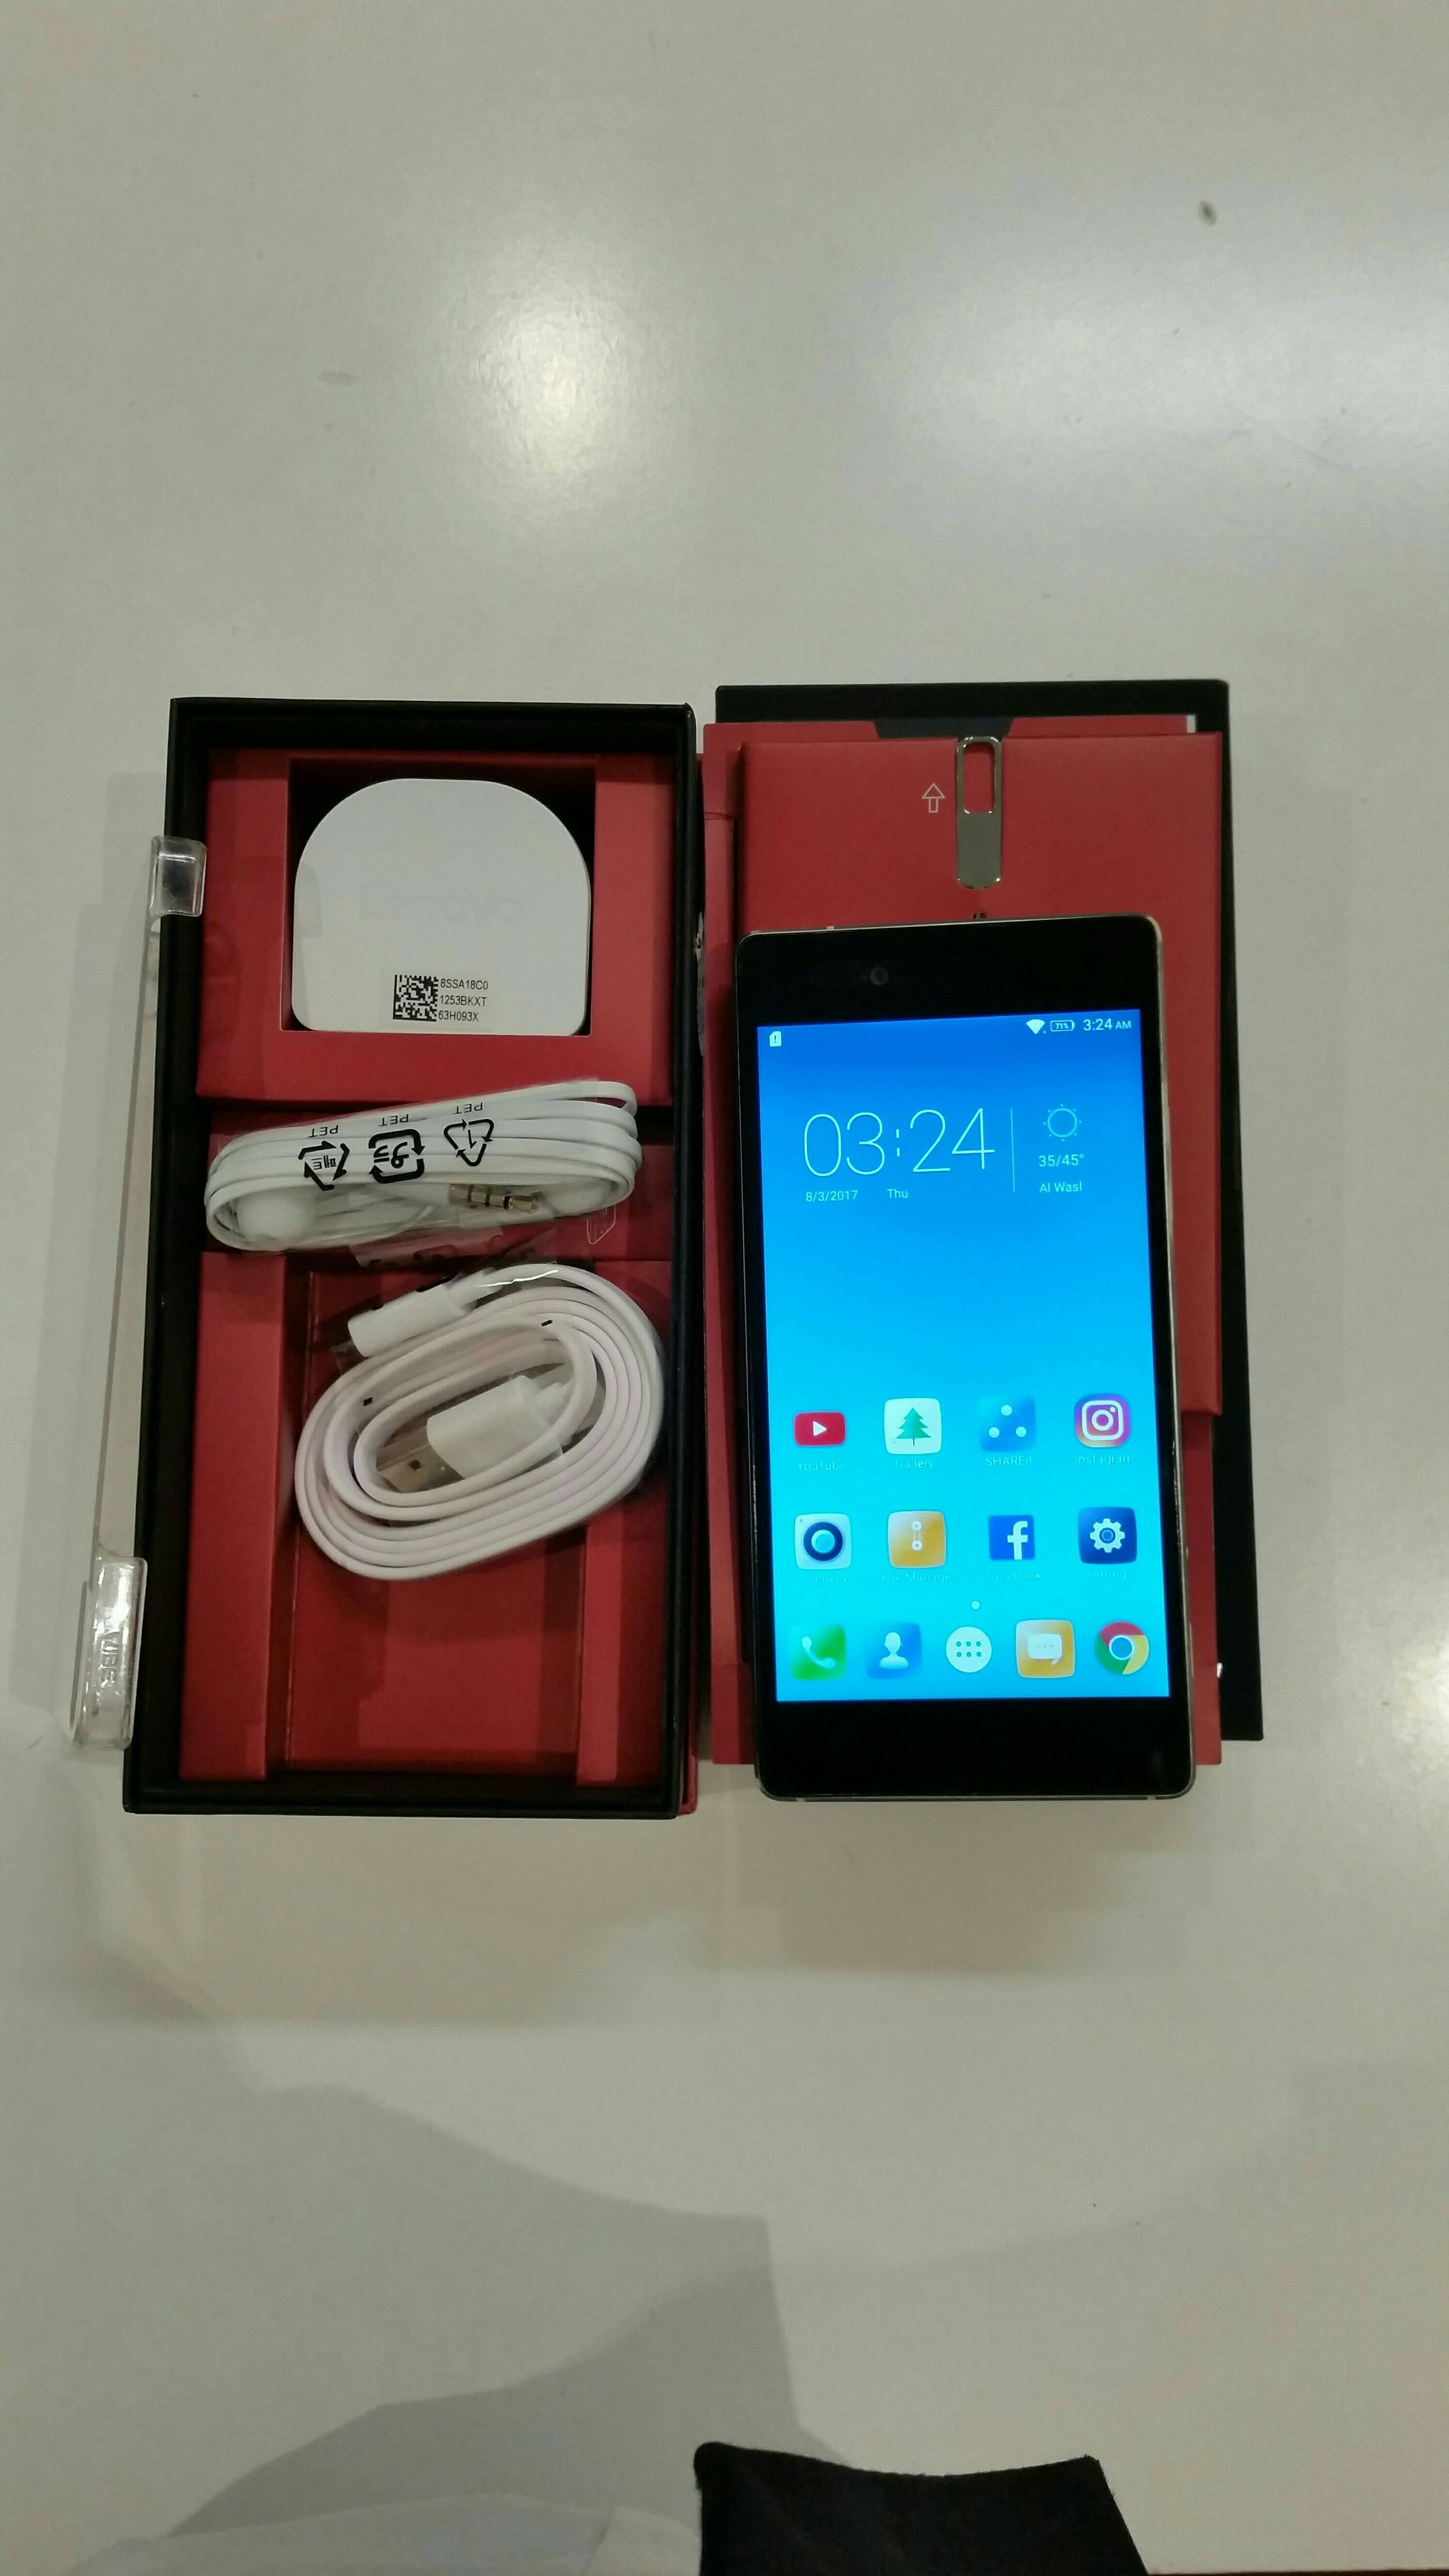 Lenovo Vibe Slot Smartphone 32 GB 3 GB Ram With Box Pack 🎁 All Accessory, Normal Used.